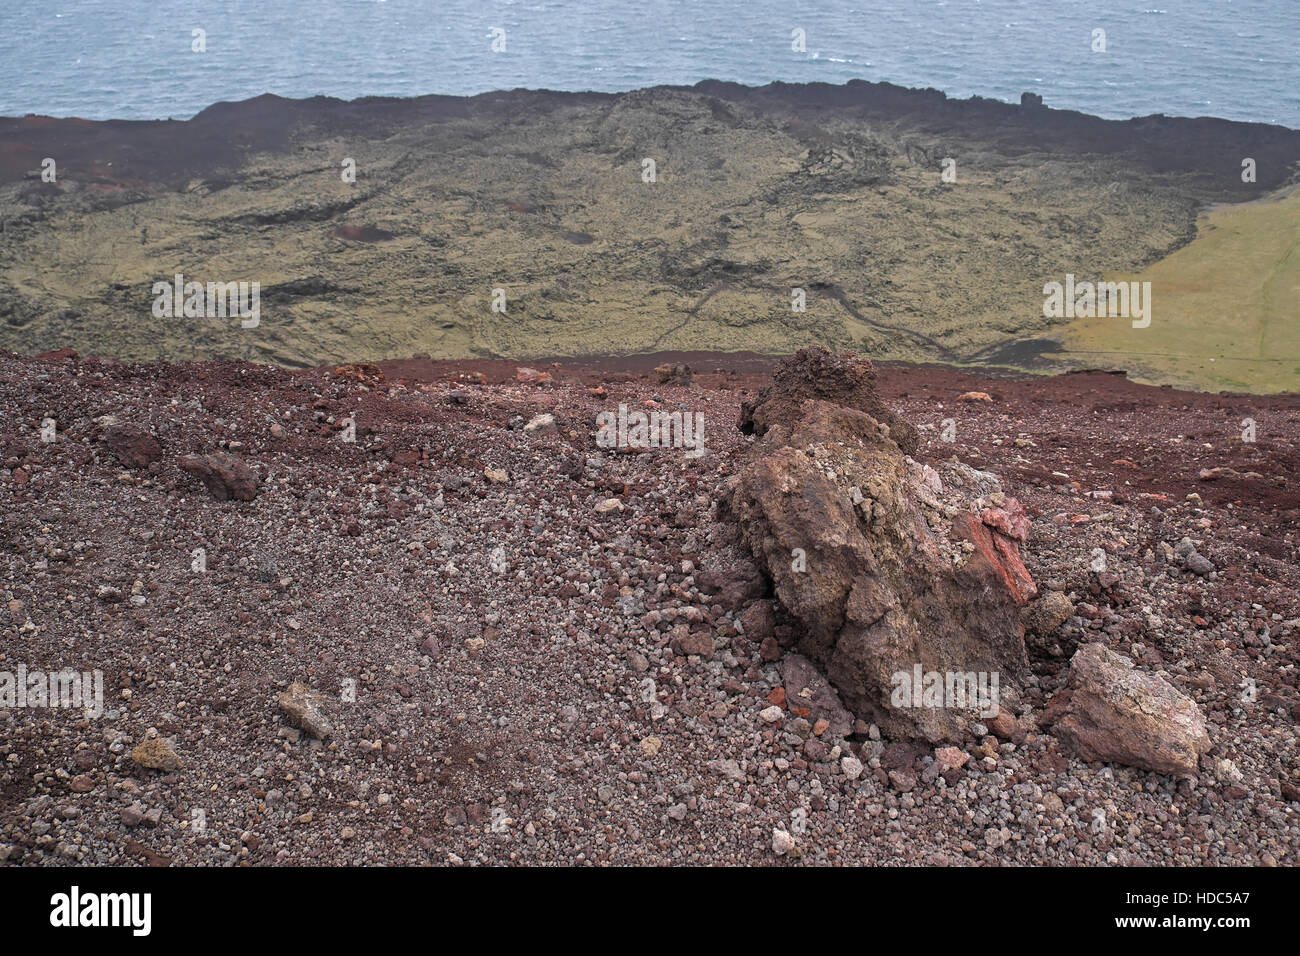 The extent of the lava field seen over volcanic rocks of Eldfell, Heimaey, Vestmannaeyjar Islands, southern Iceland - Stock Image